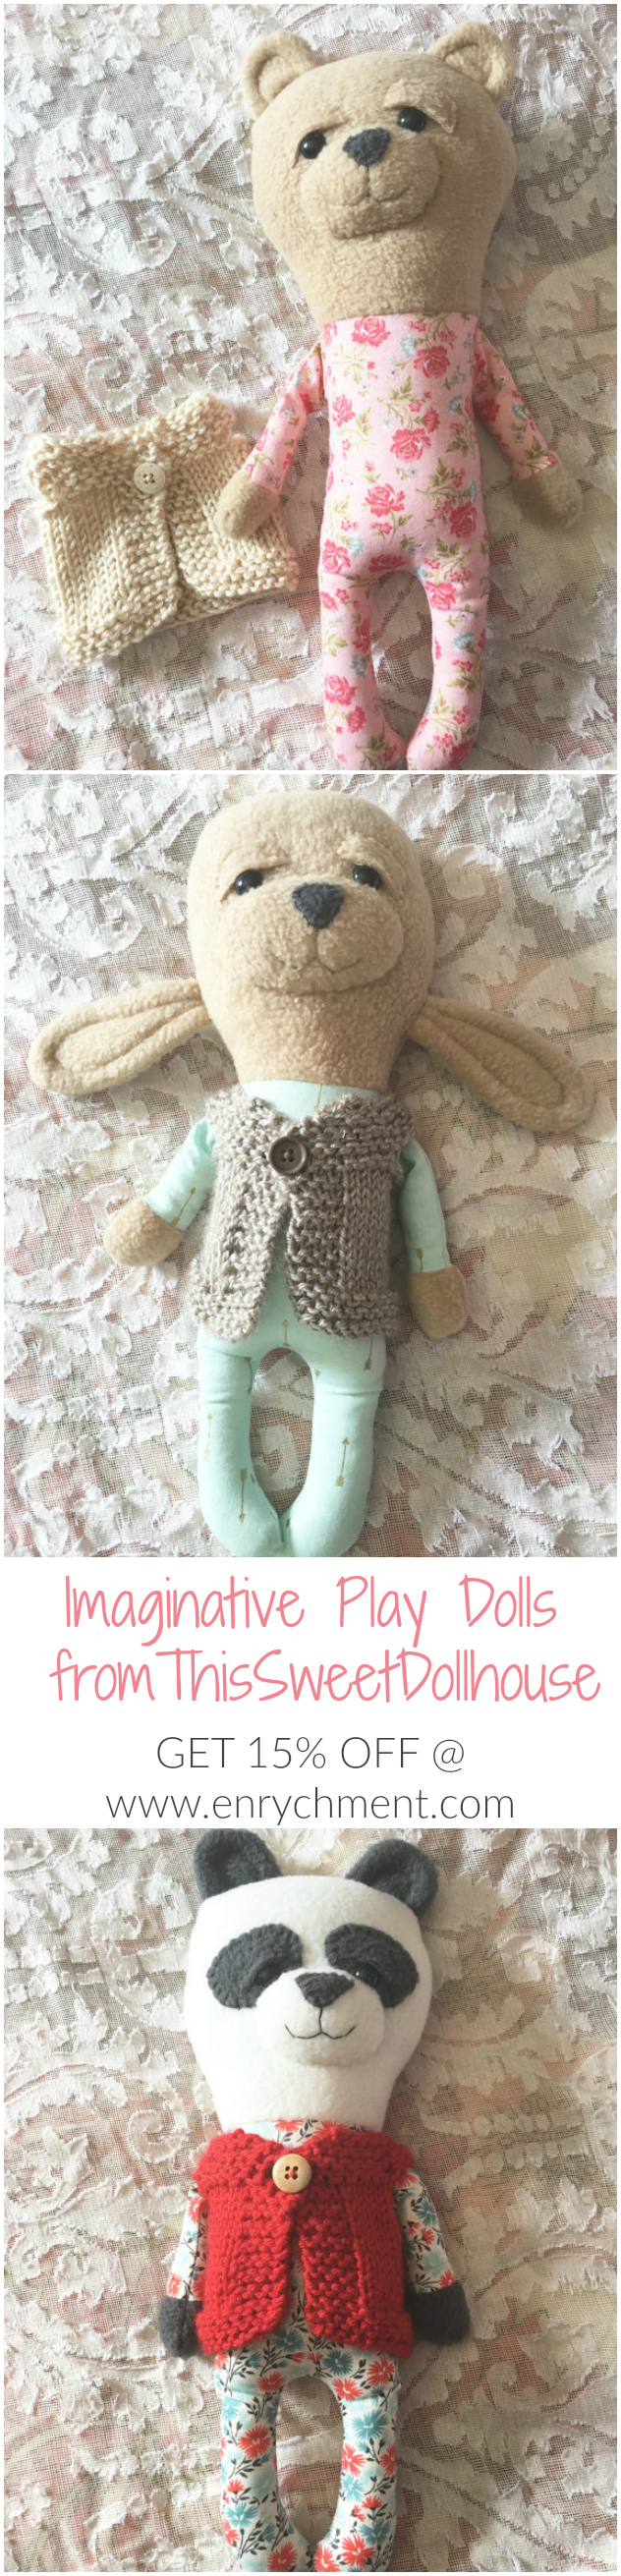 Imaginative Play Dolls from ThisSweetDollhouse - 15% off on www.enrychment.com!